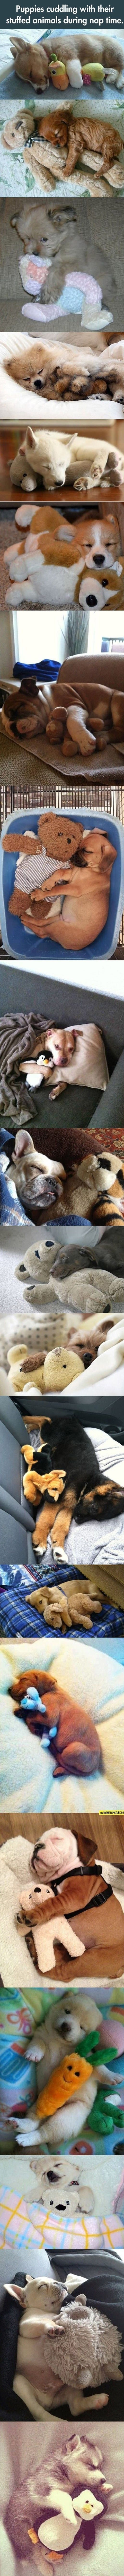 Best Naps You'll See Today - 9GAG